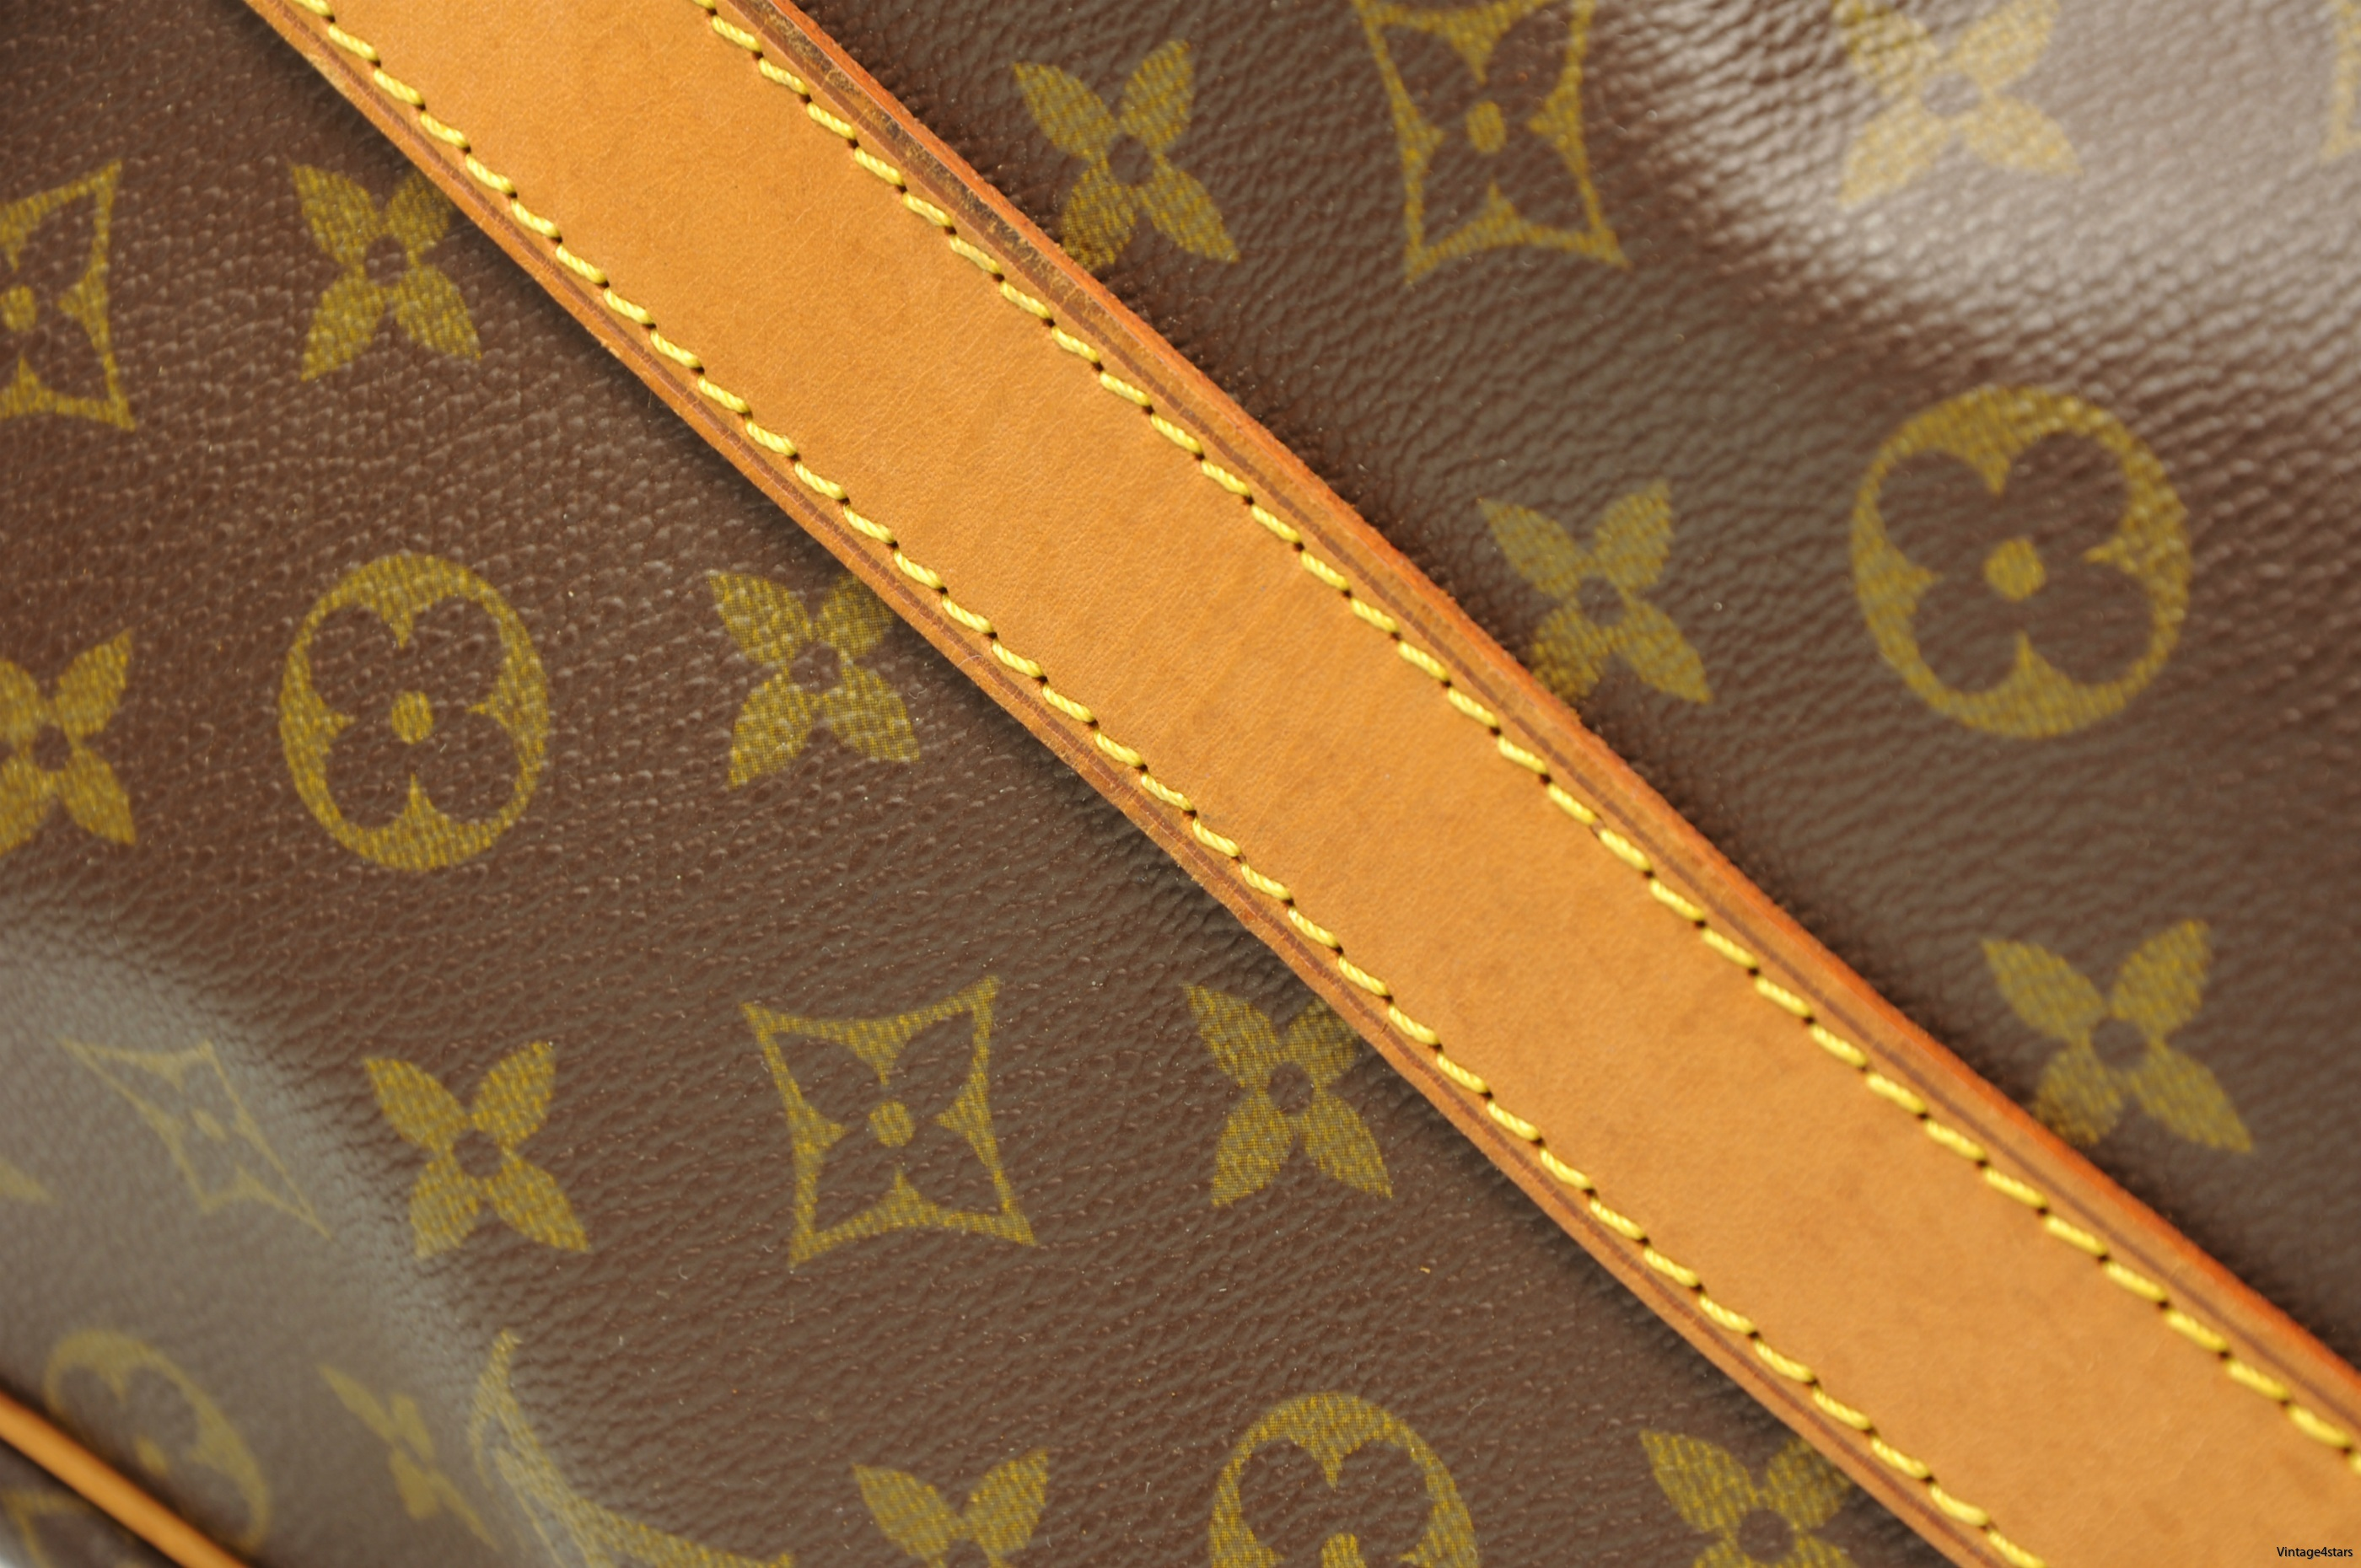 Louis Vuitton Keepall 55 Monogram 6